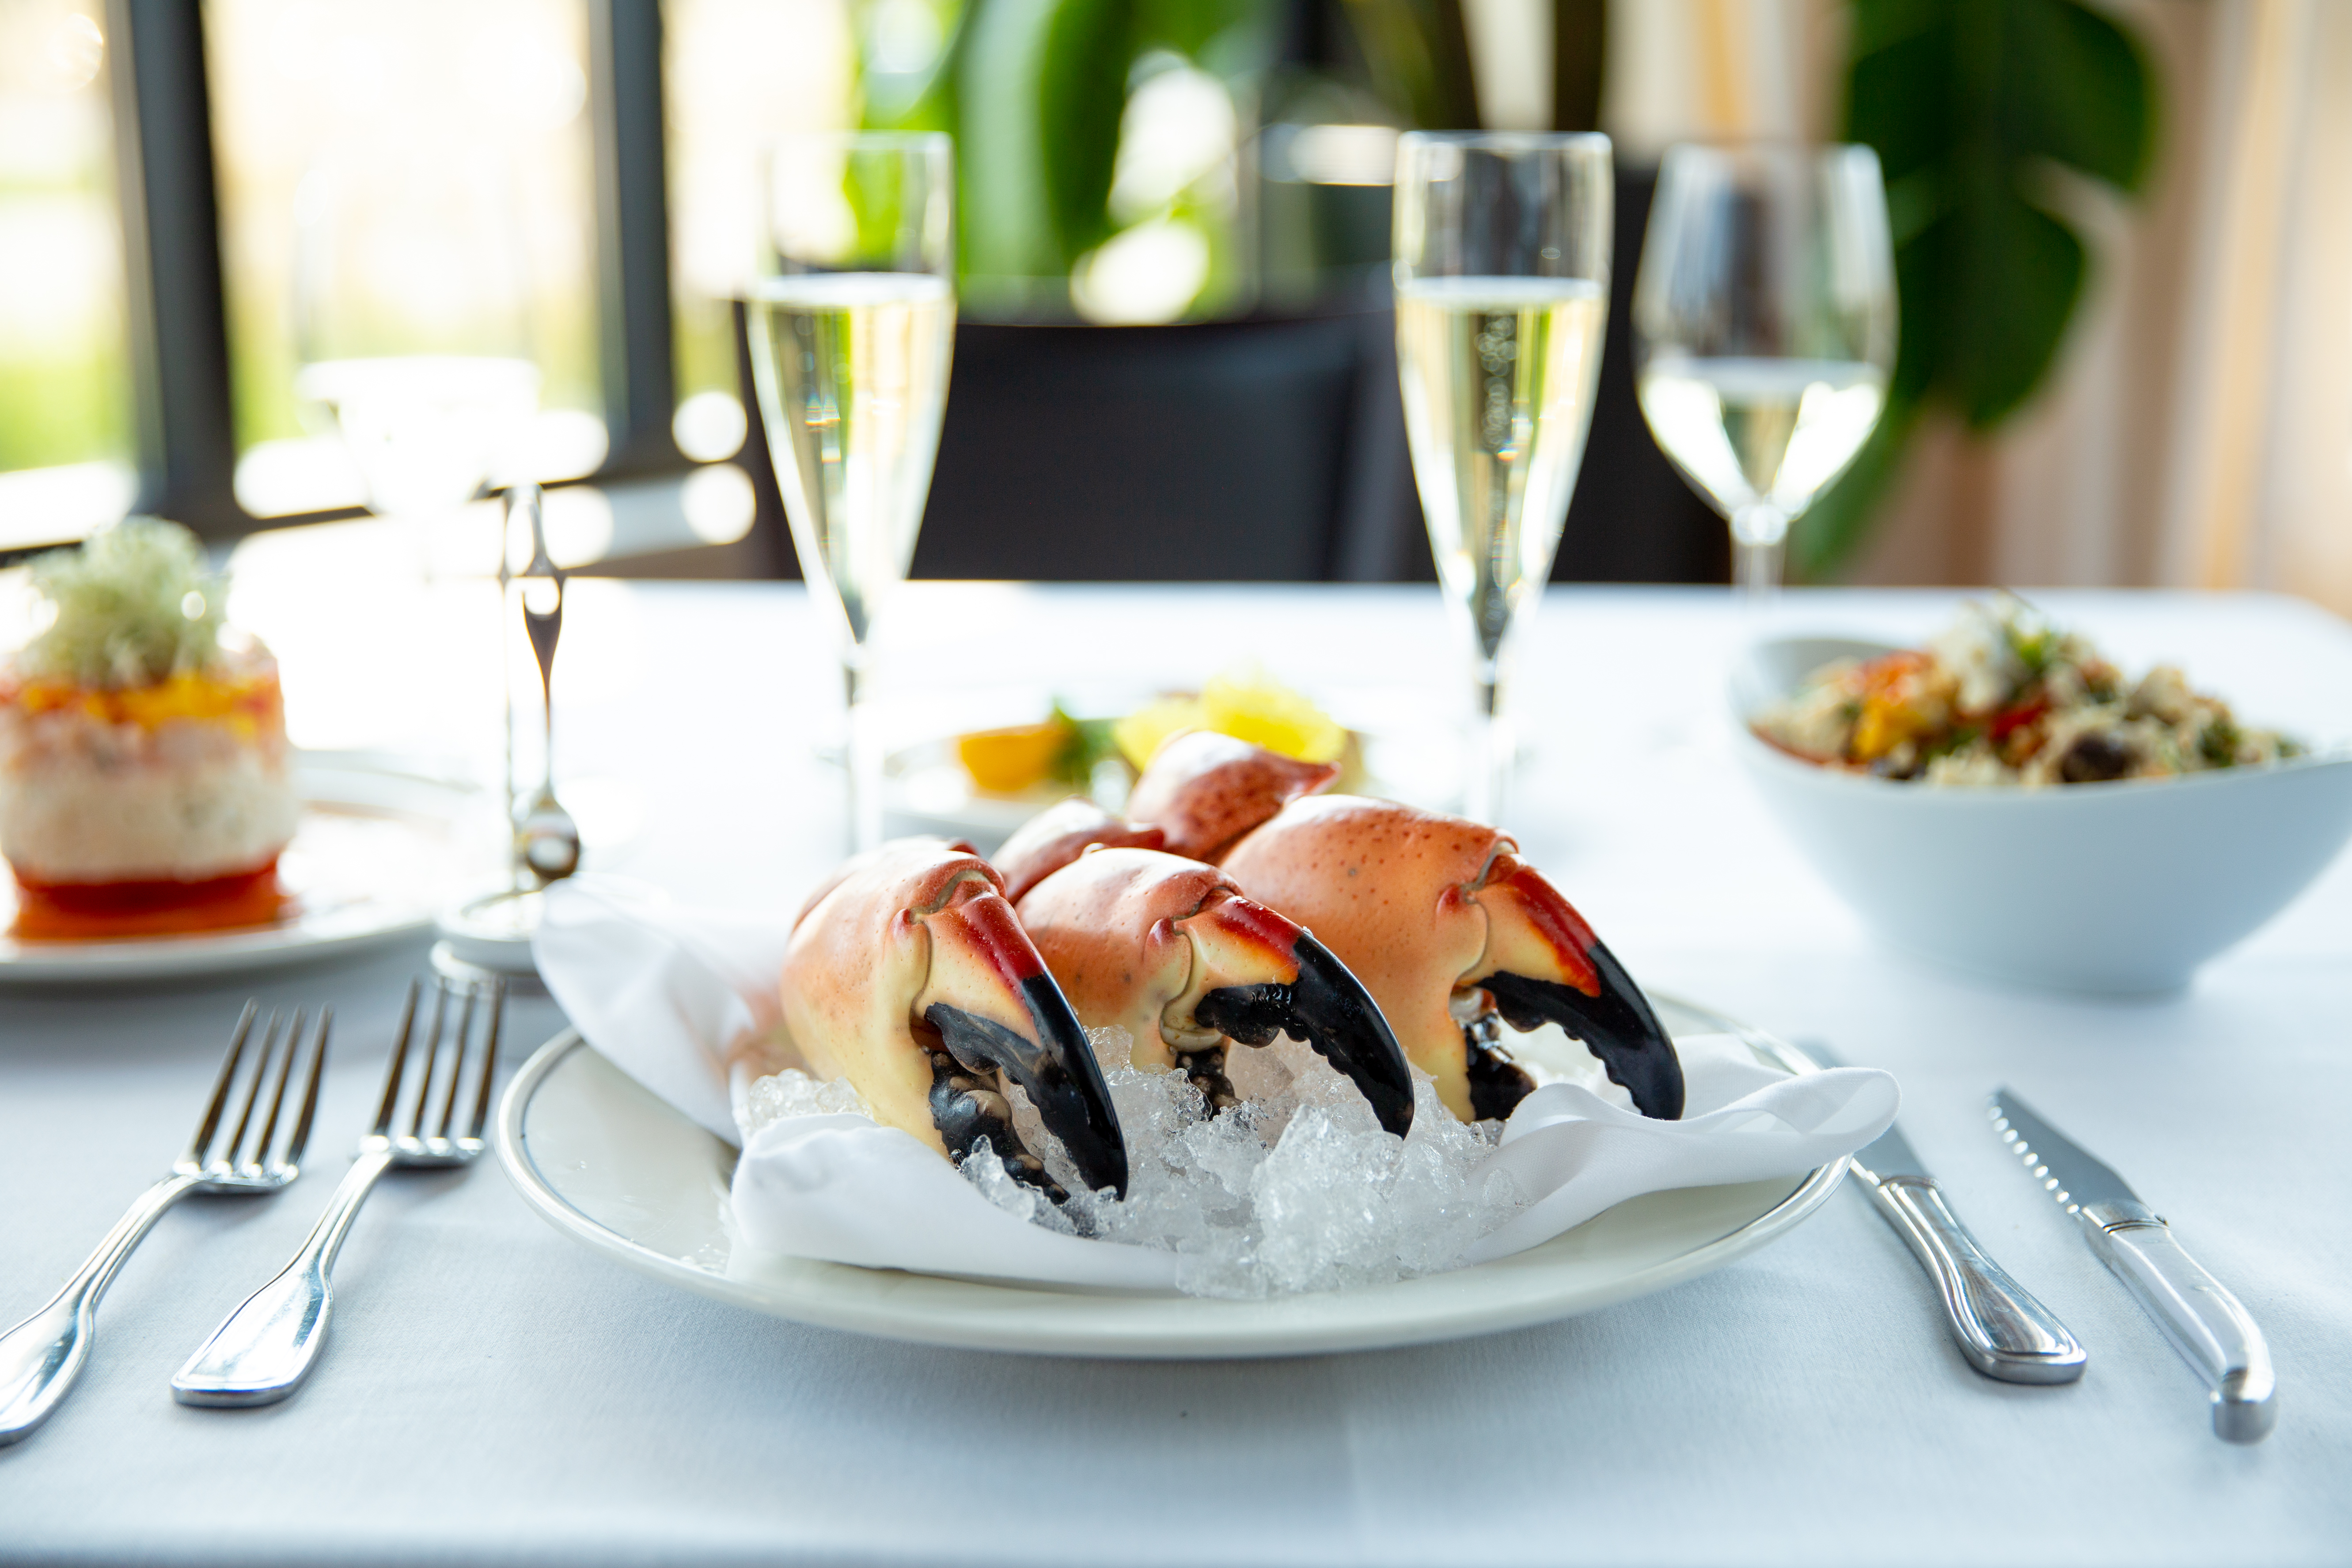 Florida Stone Crab Claws on ice in the Truluck's dining room. Paired with crab Napoleon, crab fried rice and champagne.